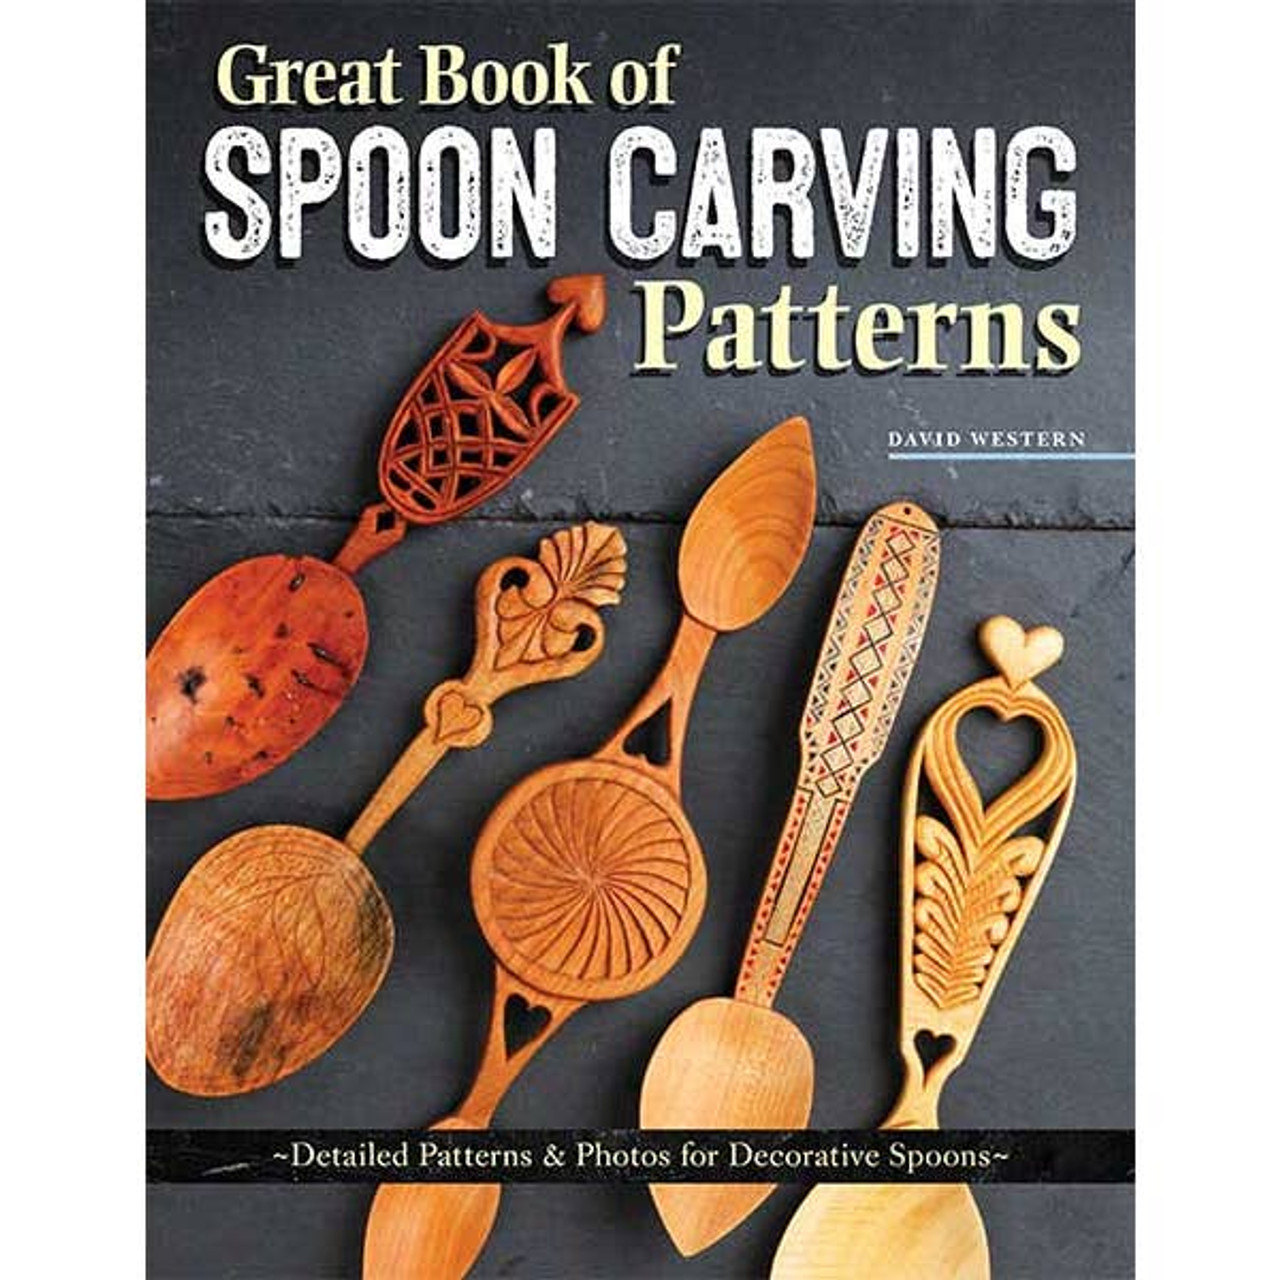 The Great Book of Spoon Carving Patterns